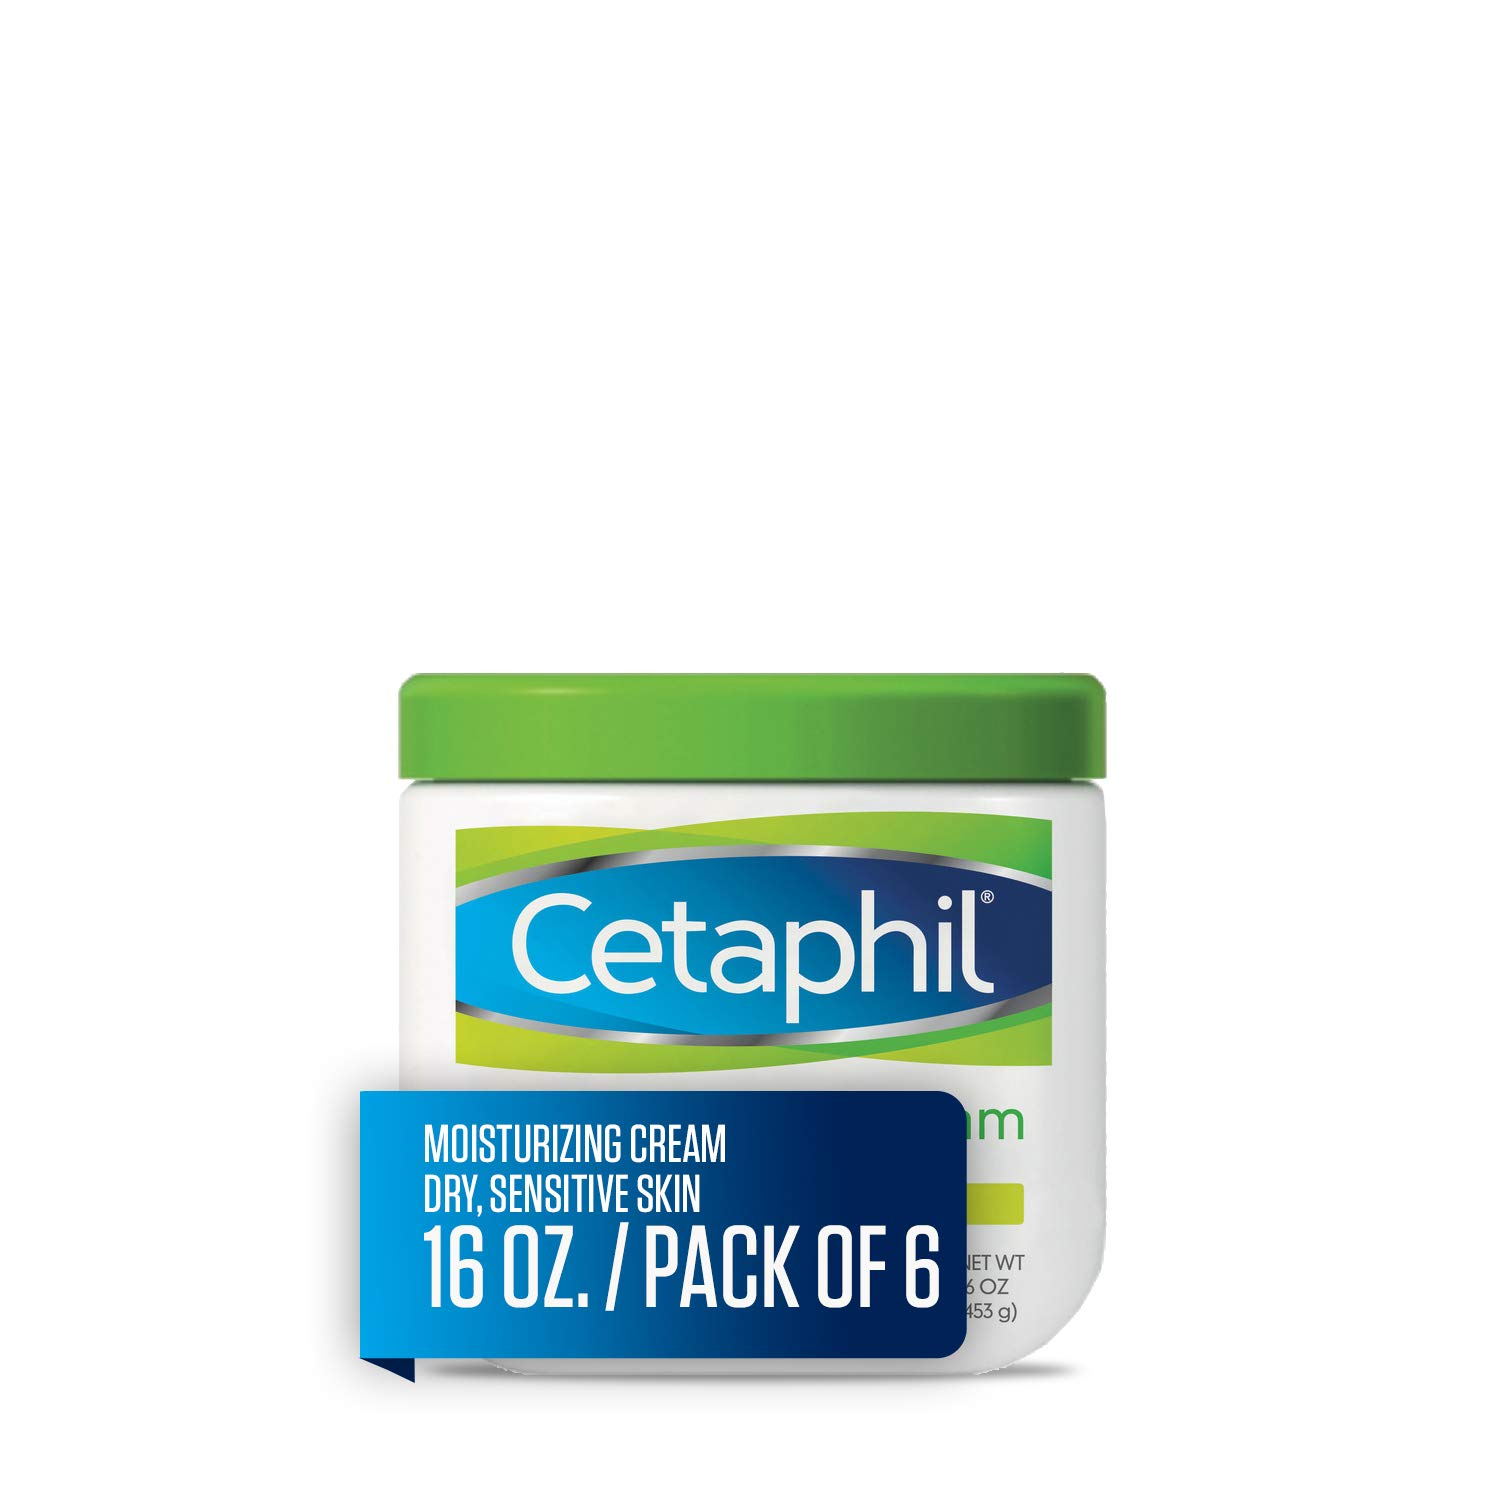 Cetaphil Moisturizing Cream for Very Dry/Sensitive Skin, Fragrance Free, 16 Ounce, Pack of 6